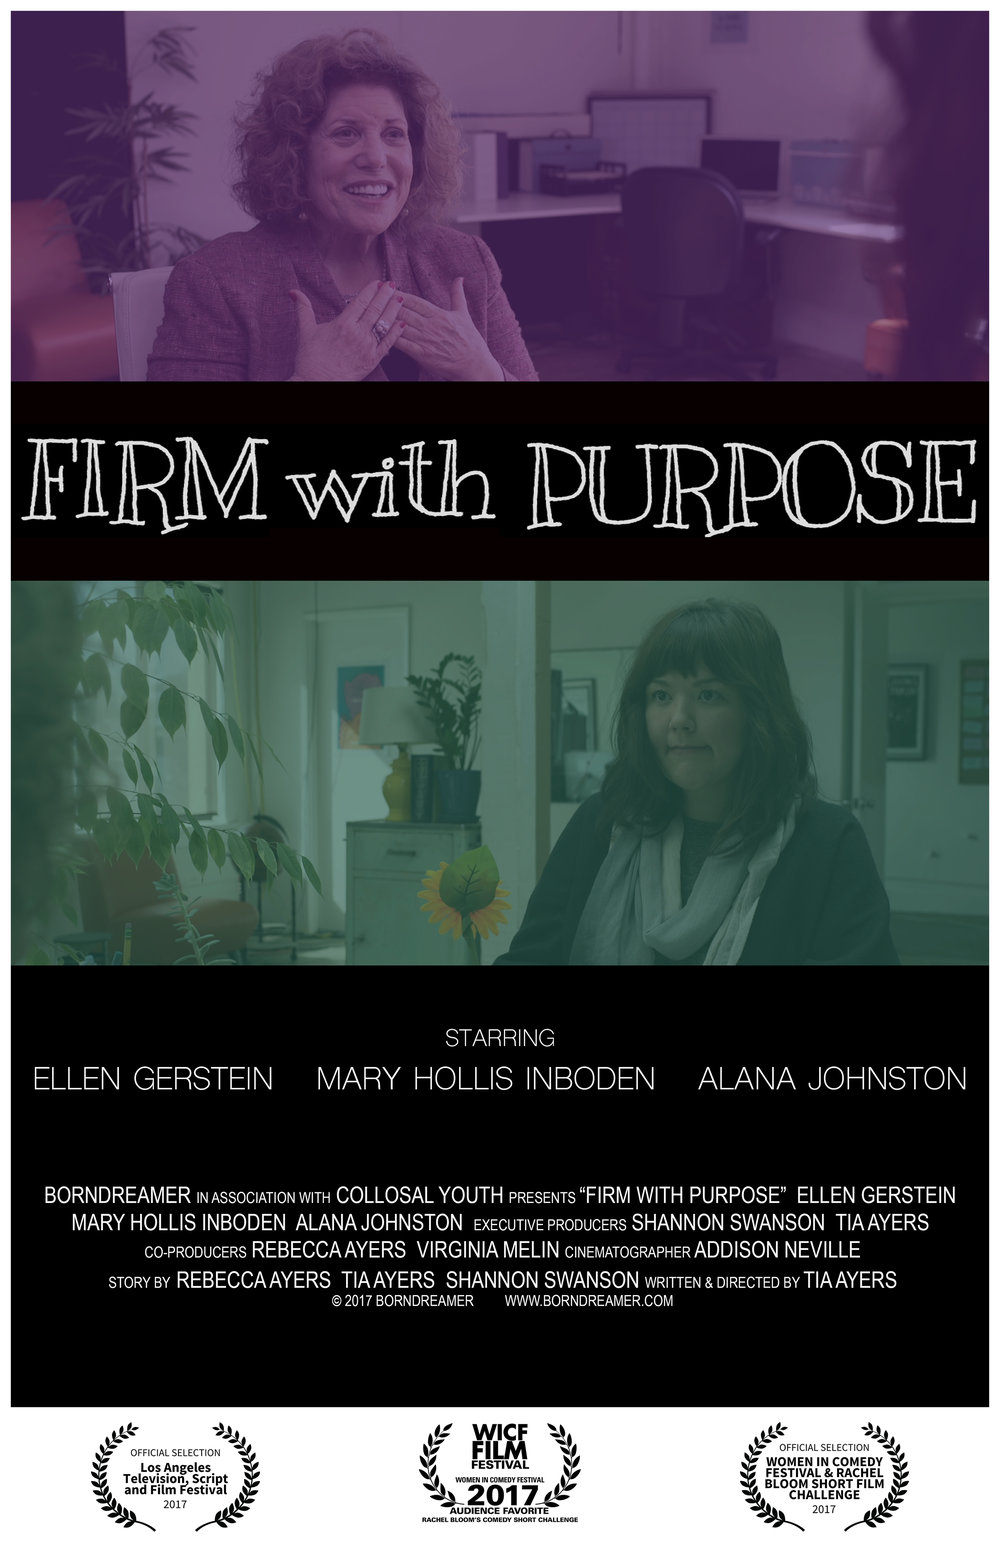 FIRM WITH PURPOSE - A short film by Tia Ayers & Shannon Ayers SwansonWinner, Audience FavoriteWomen in Comedy FestivalWinner, Best ComedyLos Angeles Television, Script & Film FestivalOfficial SelectionBroad Humor Film FestivalOfficial SelectionKansas International Film FestivalOfficial SelectionFEEDBACK Female Film FestivalWatch a teaser!For upcoming screenings or to request a private link, email:info@borndreamer.com